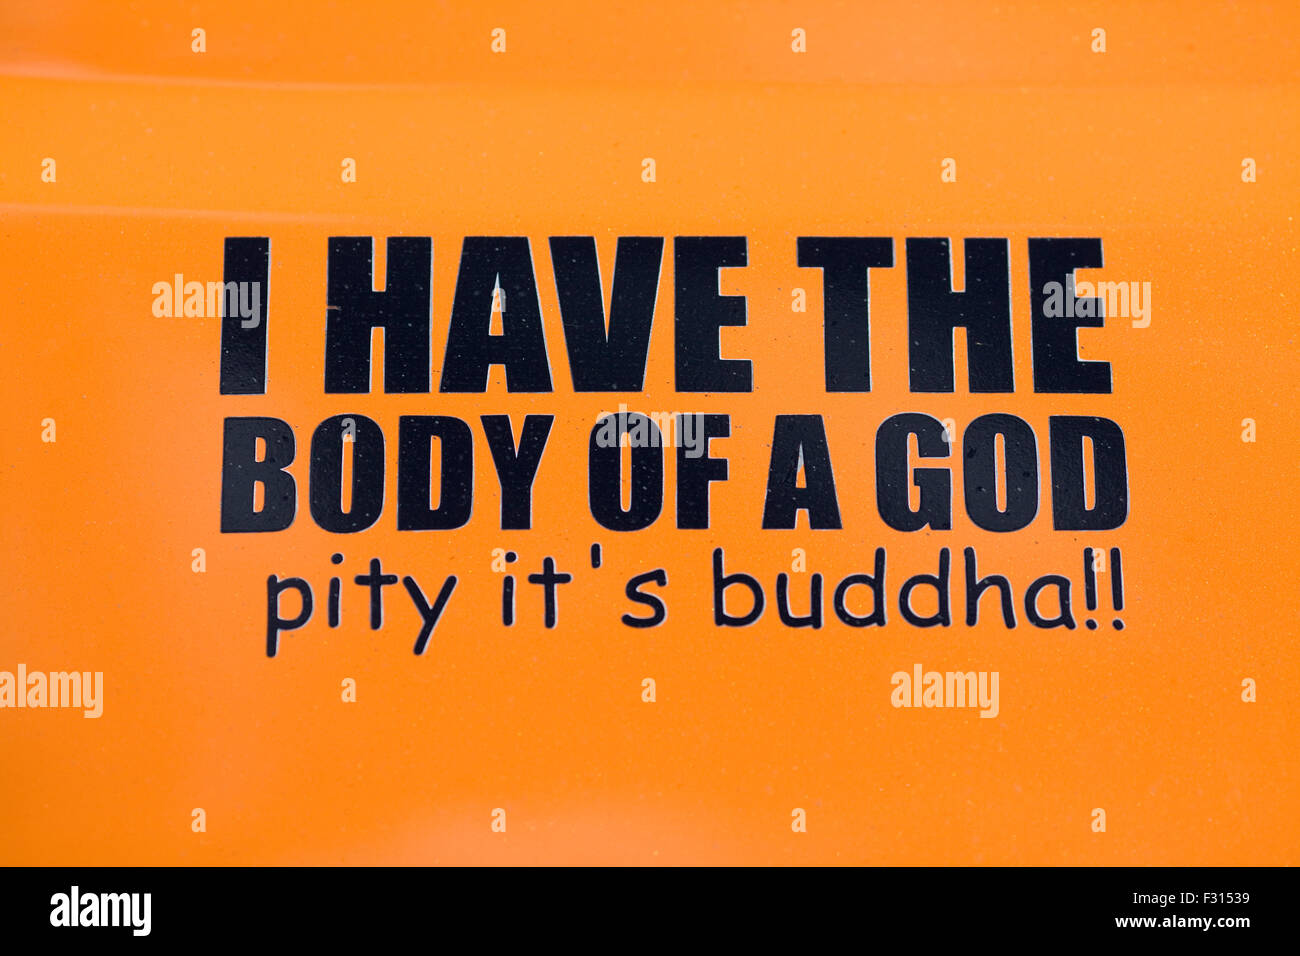 I have the body of a god Pity its Buddha Orange and black Sign - Stock Image